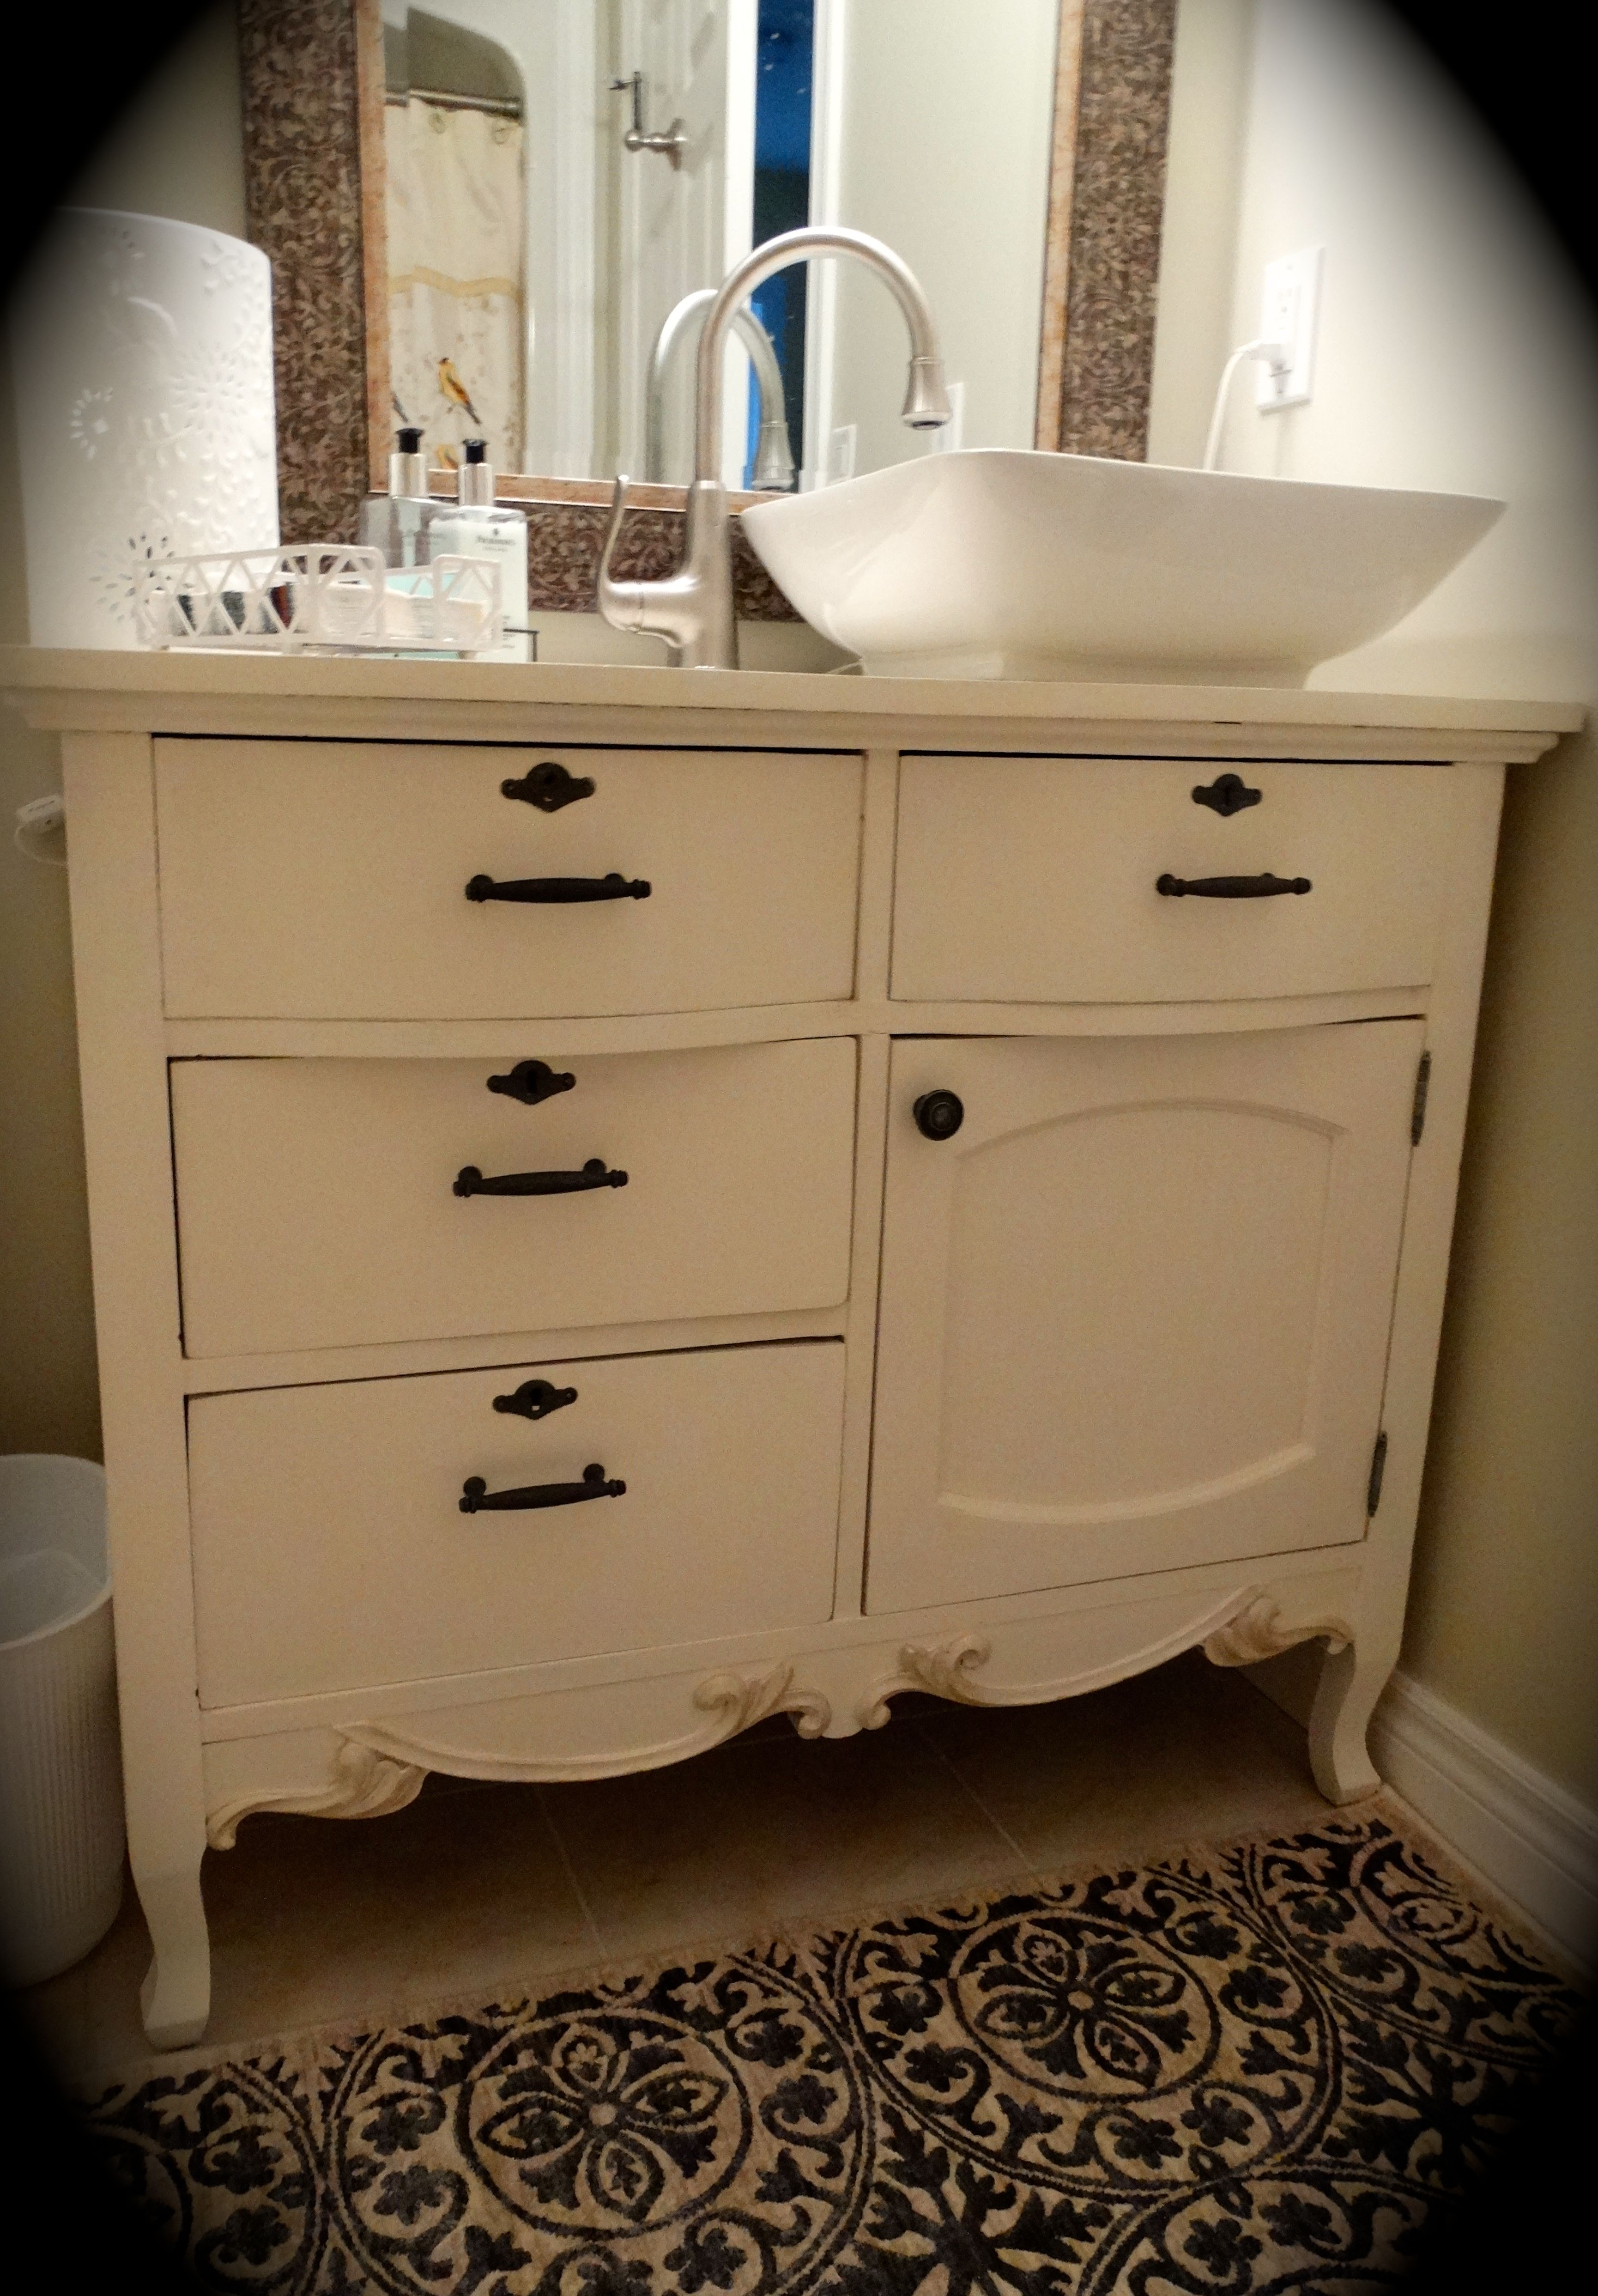 Custom vanity created for our client.